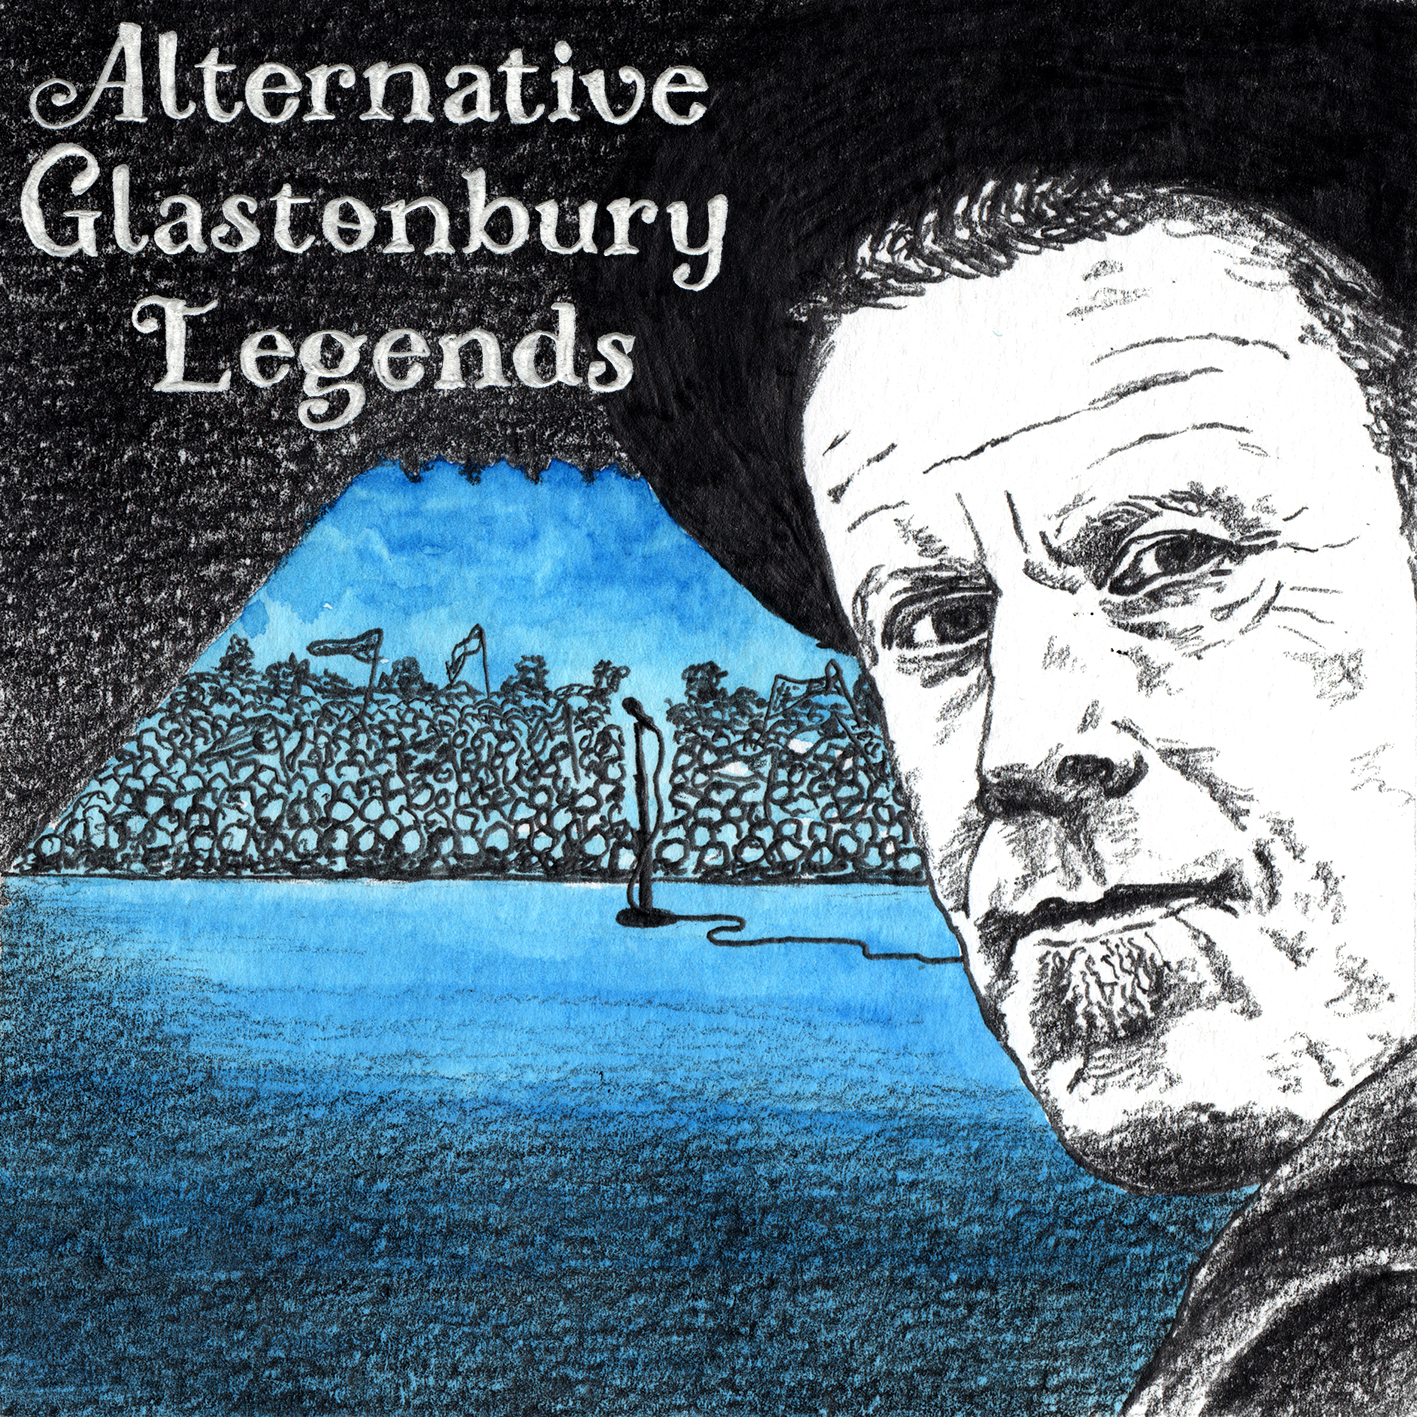 AlternativeGlastonbury.jpg